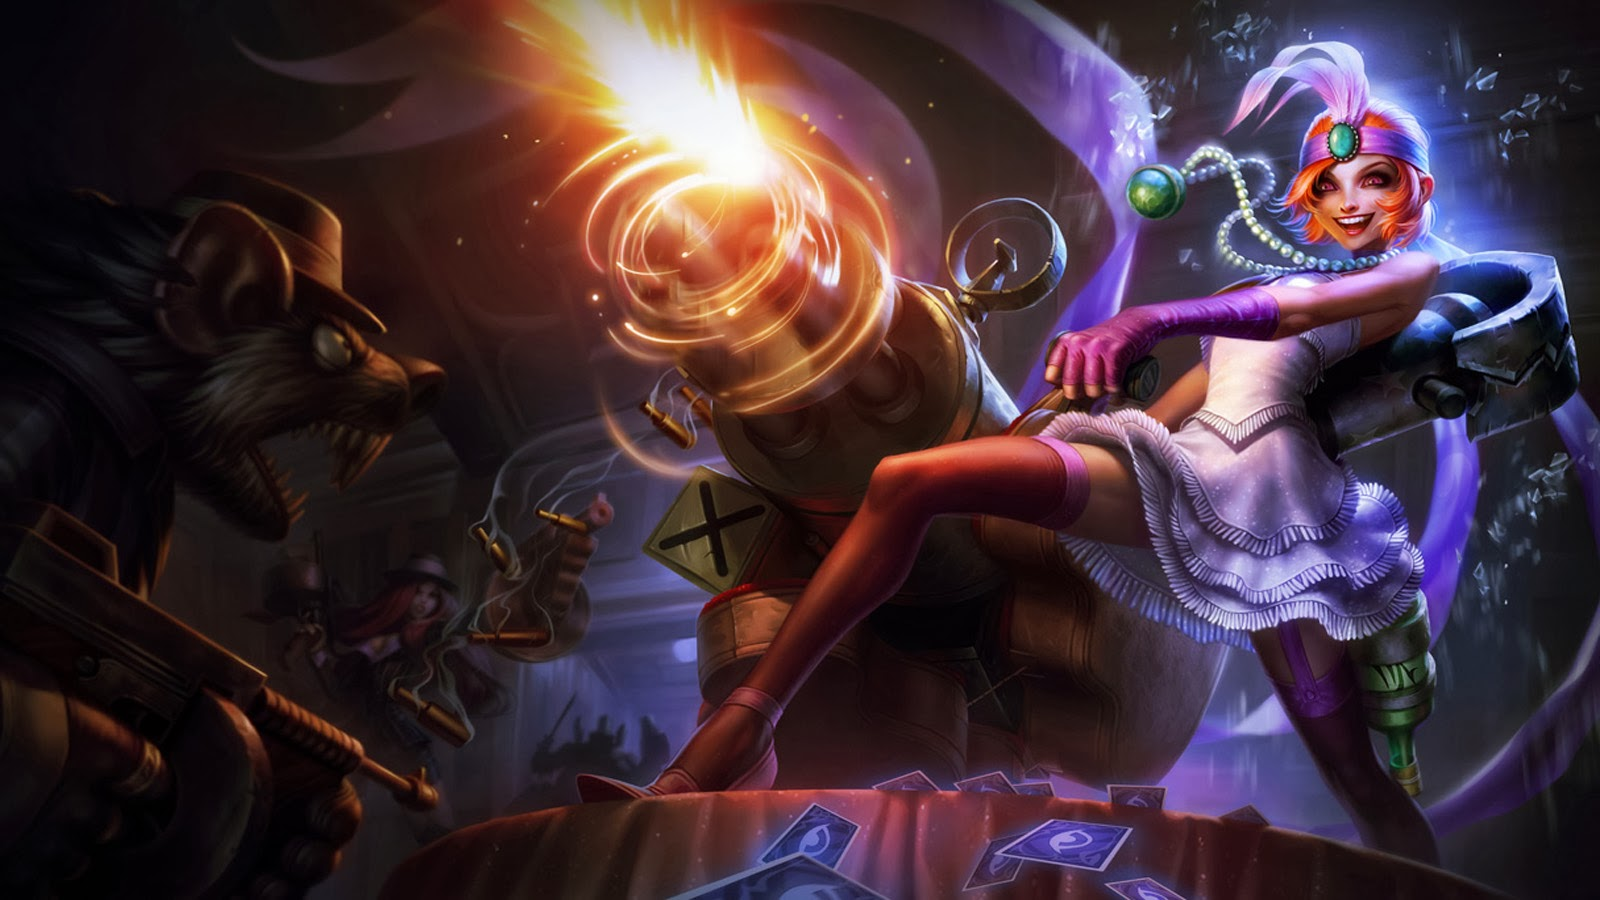 Jinx Wallpaper League Of Legends jinx league of legends lol girl mafia skin splash hd wallpaper